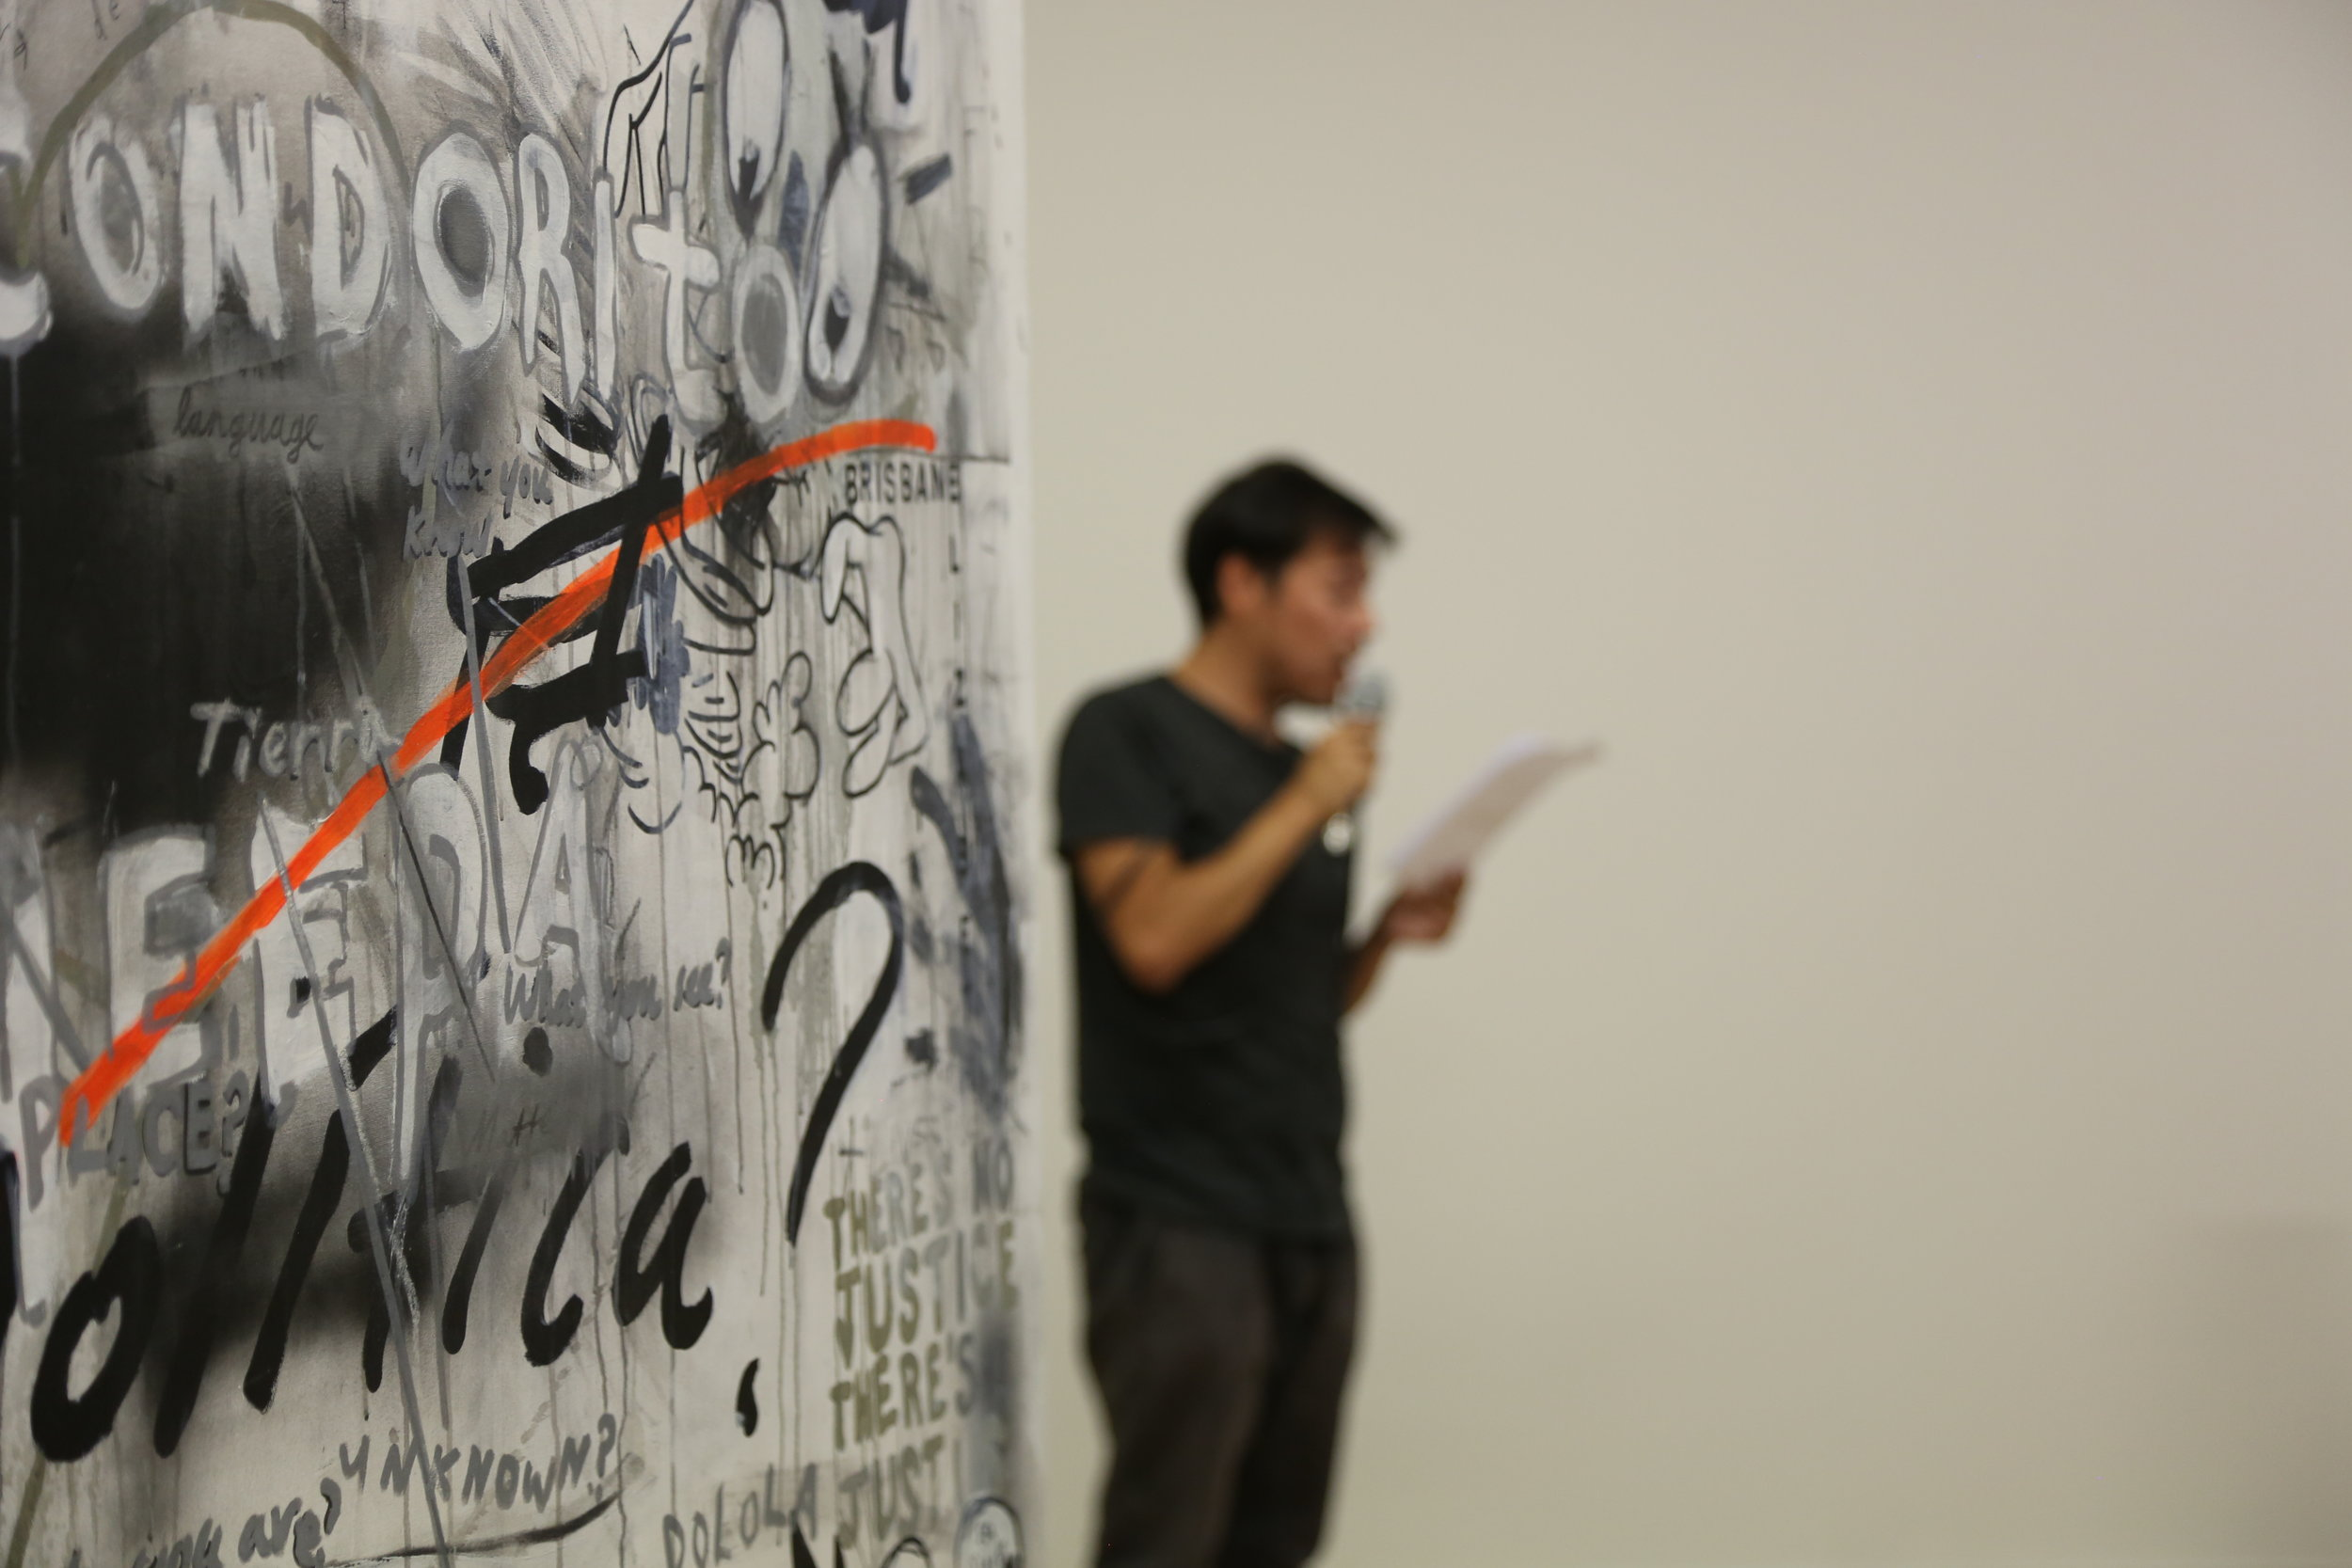 From Left: Robert O'Connor, ¿Donde está la línea entre el arte y la política? (detail of self-standing canvas), 2018, mix media, 240 x 240 cm; Eduardo Cruces, Reconversión-Ruina, Chile-Europa-Tasmania, performative reading, 12'57'', 2011-ongoing (Photo credit: Mat Carey)